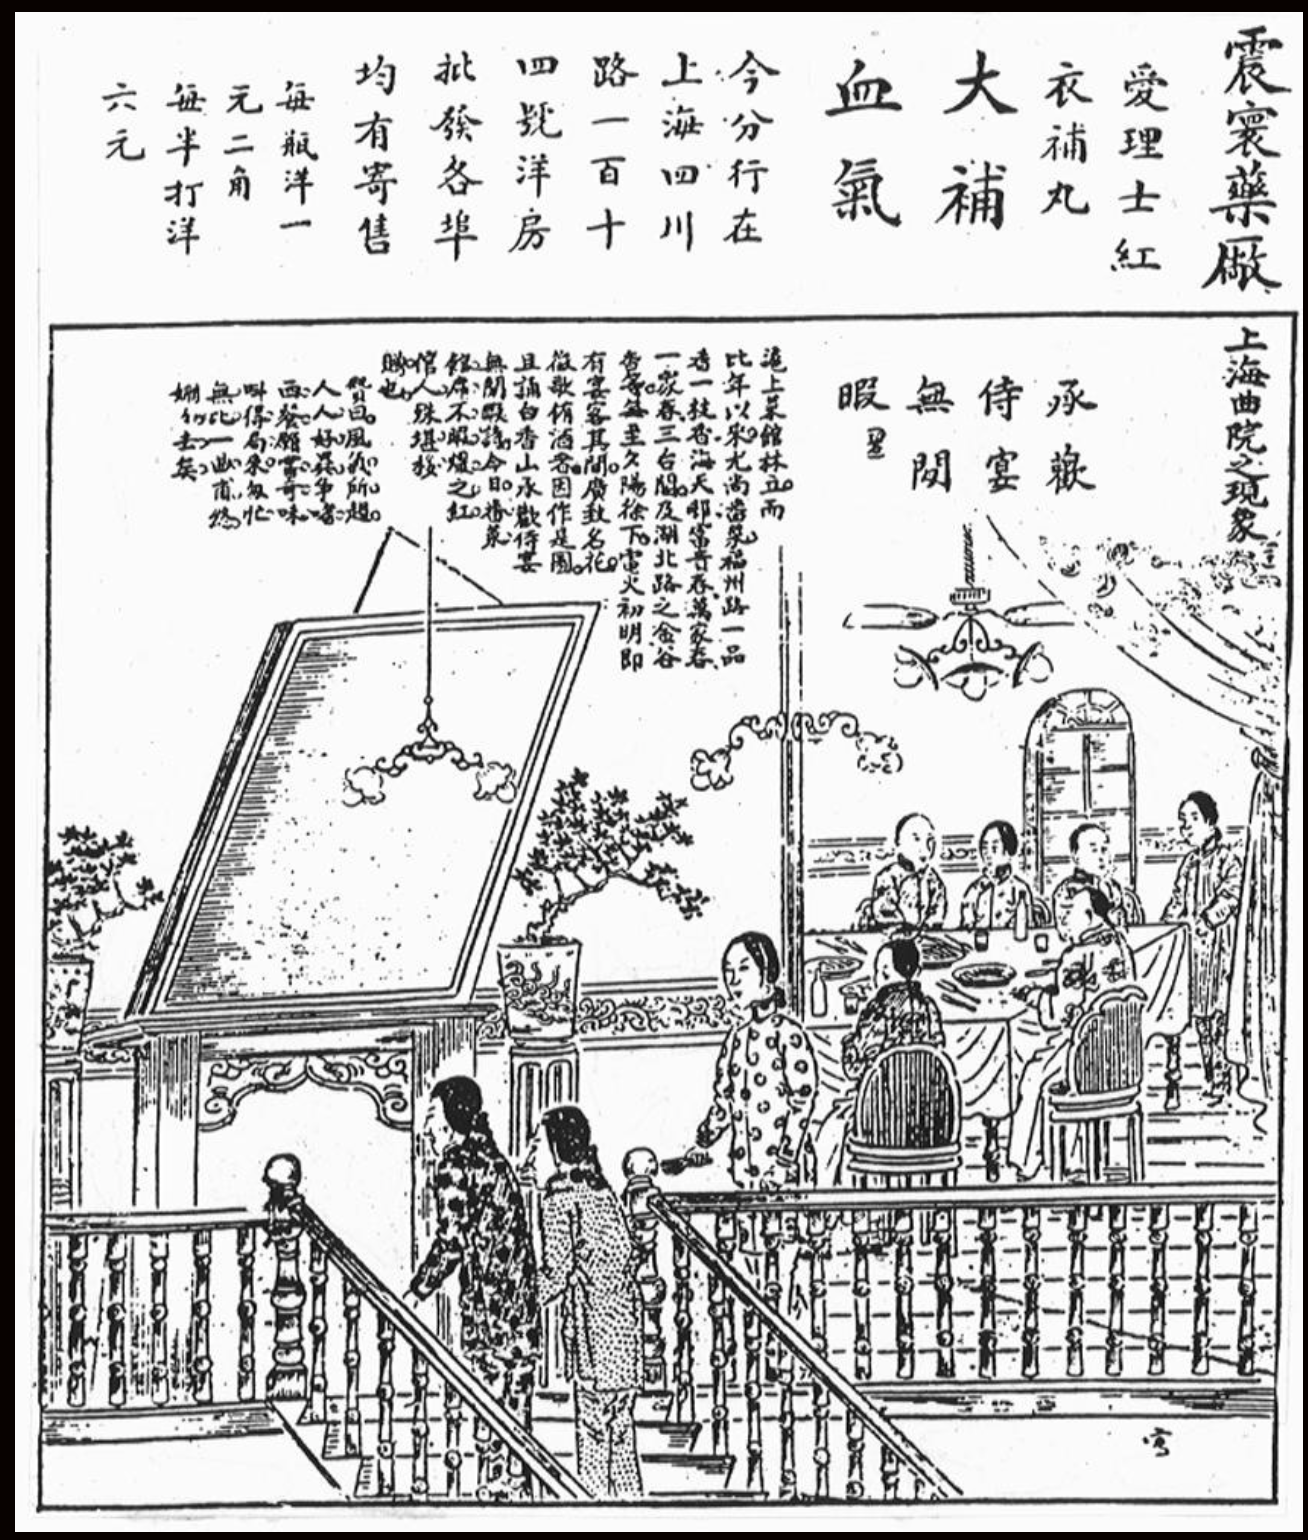 """Courteans and male customers gather for a dinner party at a fancy western restaurant (note the plates, knives and forks and the square table) at the Yipinxiang or """"sweet fragrance"""" hotel on Fuzhou Road, from an illustrated newspaper of the late Qing period (see Catherine Vance Yeh, Shanghai Love)"""